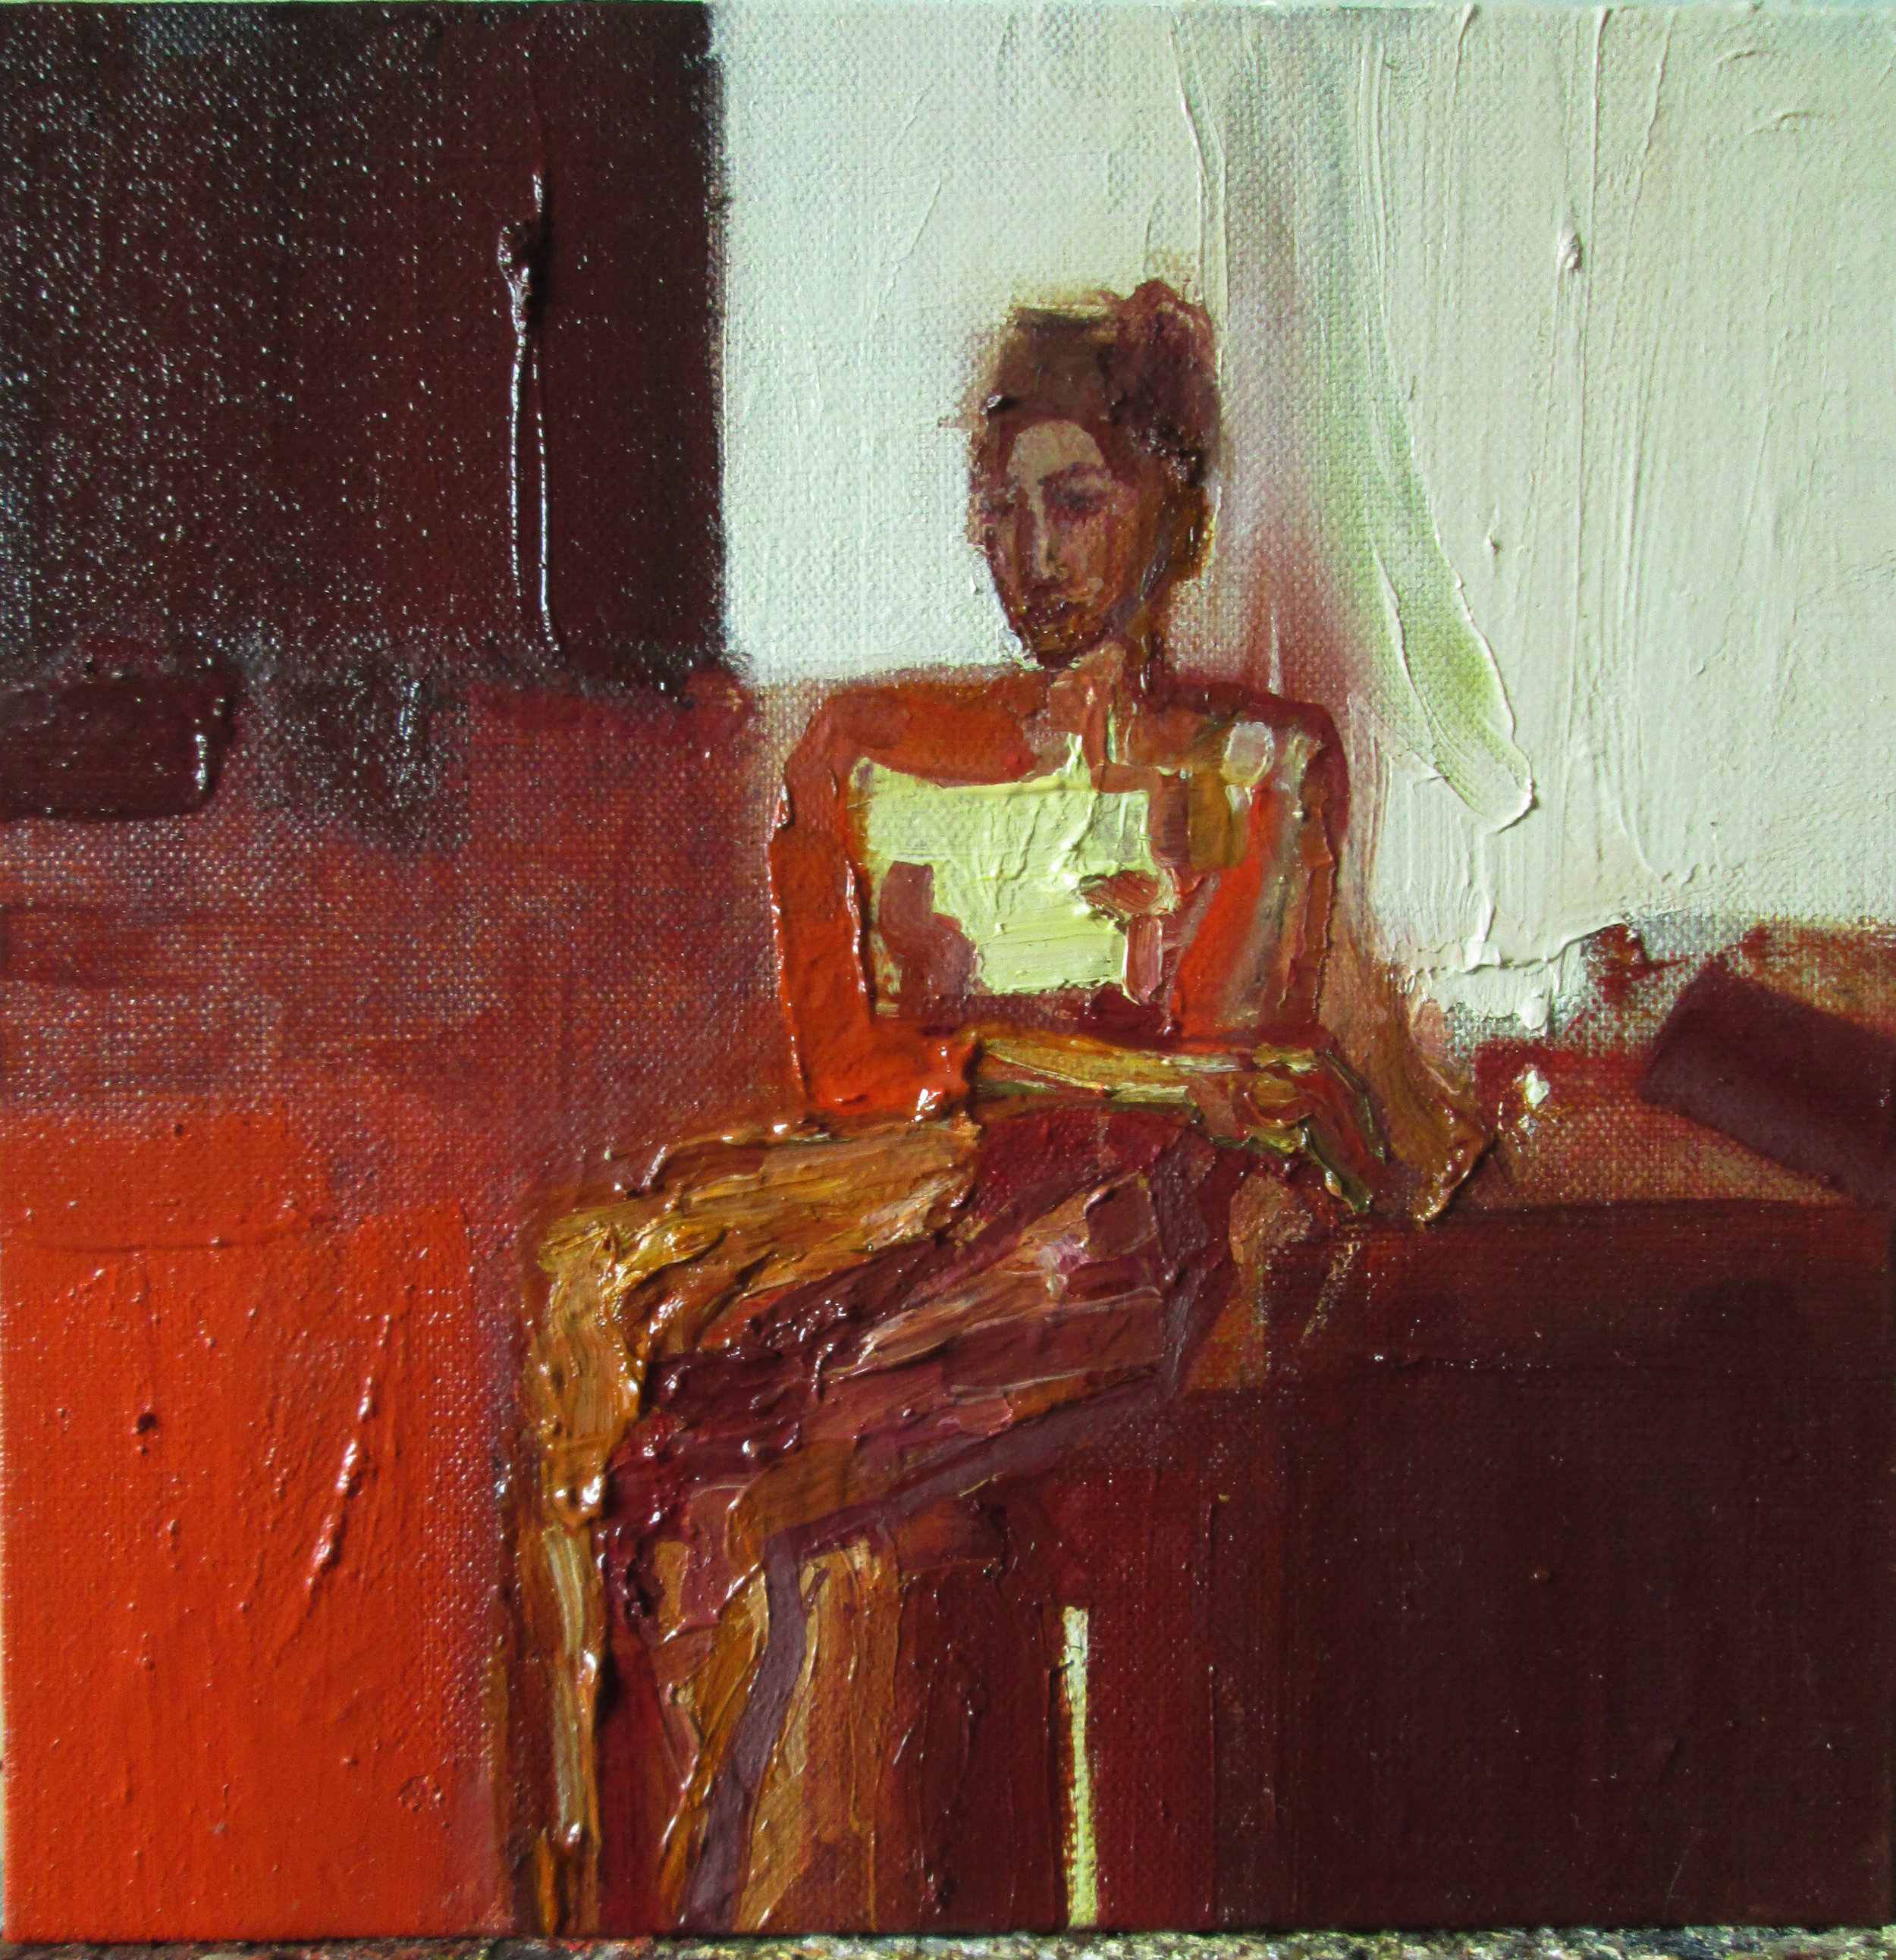 Title: The Two-fold Room Size: 33 x 33 cm Medium: Oil on linen SOLD